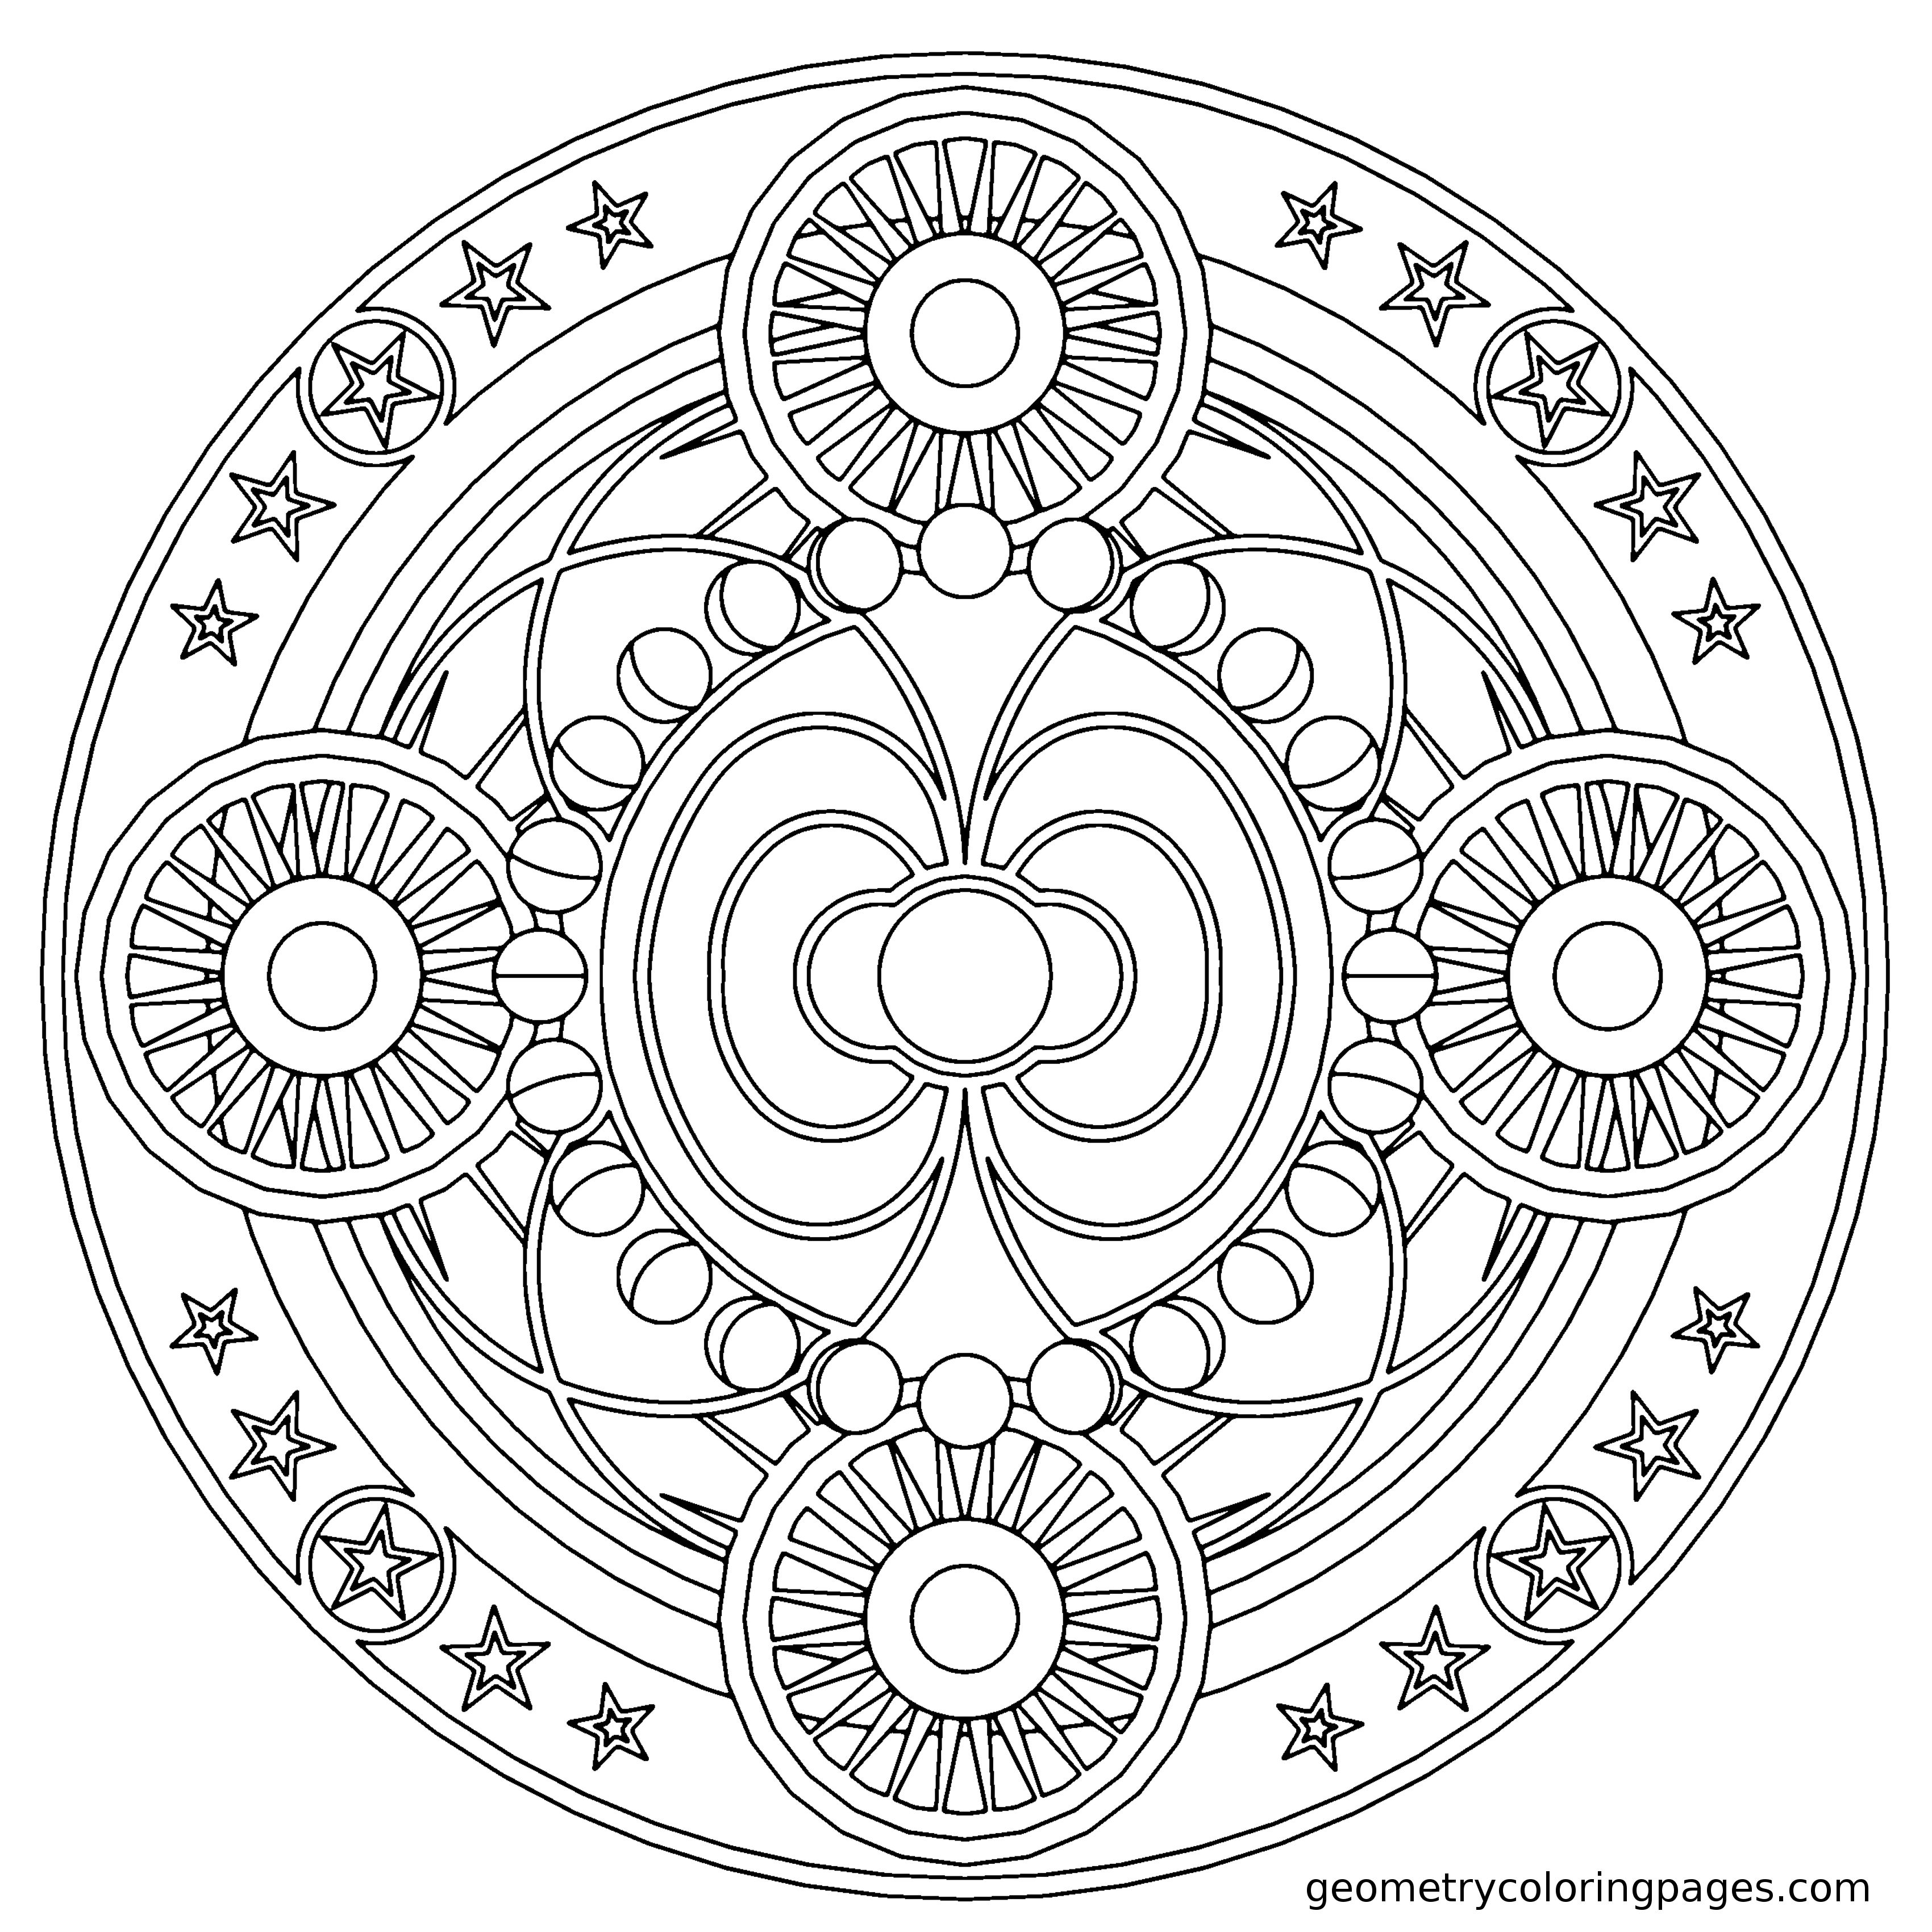 geometric coloring pages Fascia Geometry Coloring Pages